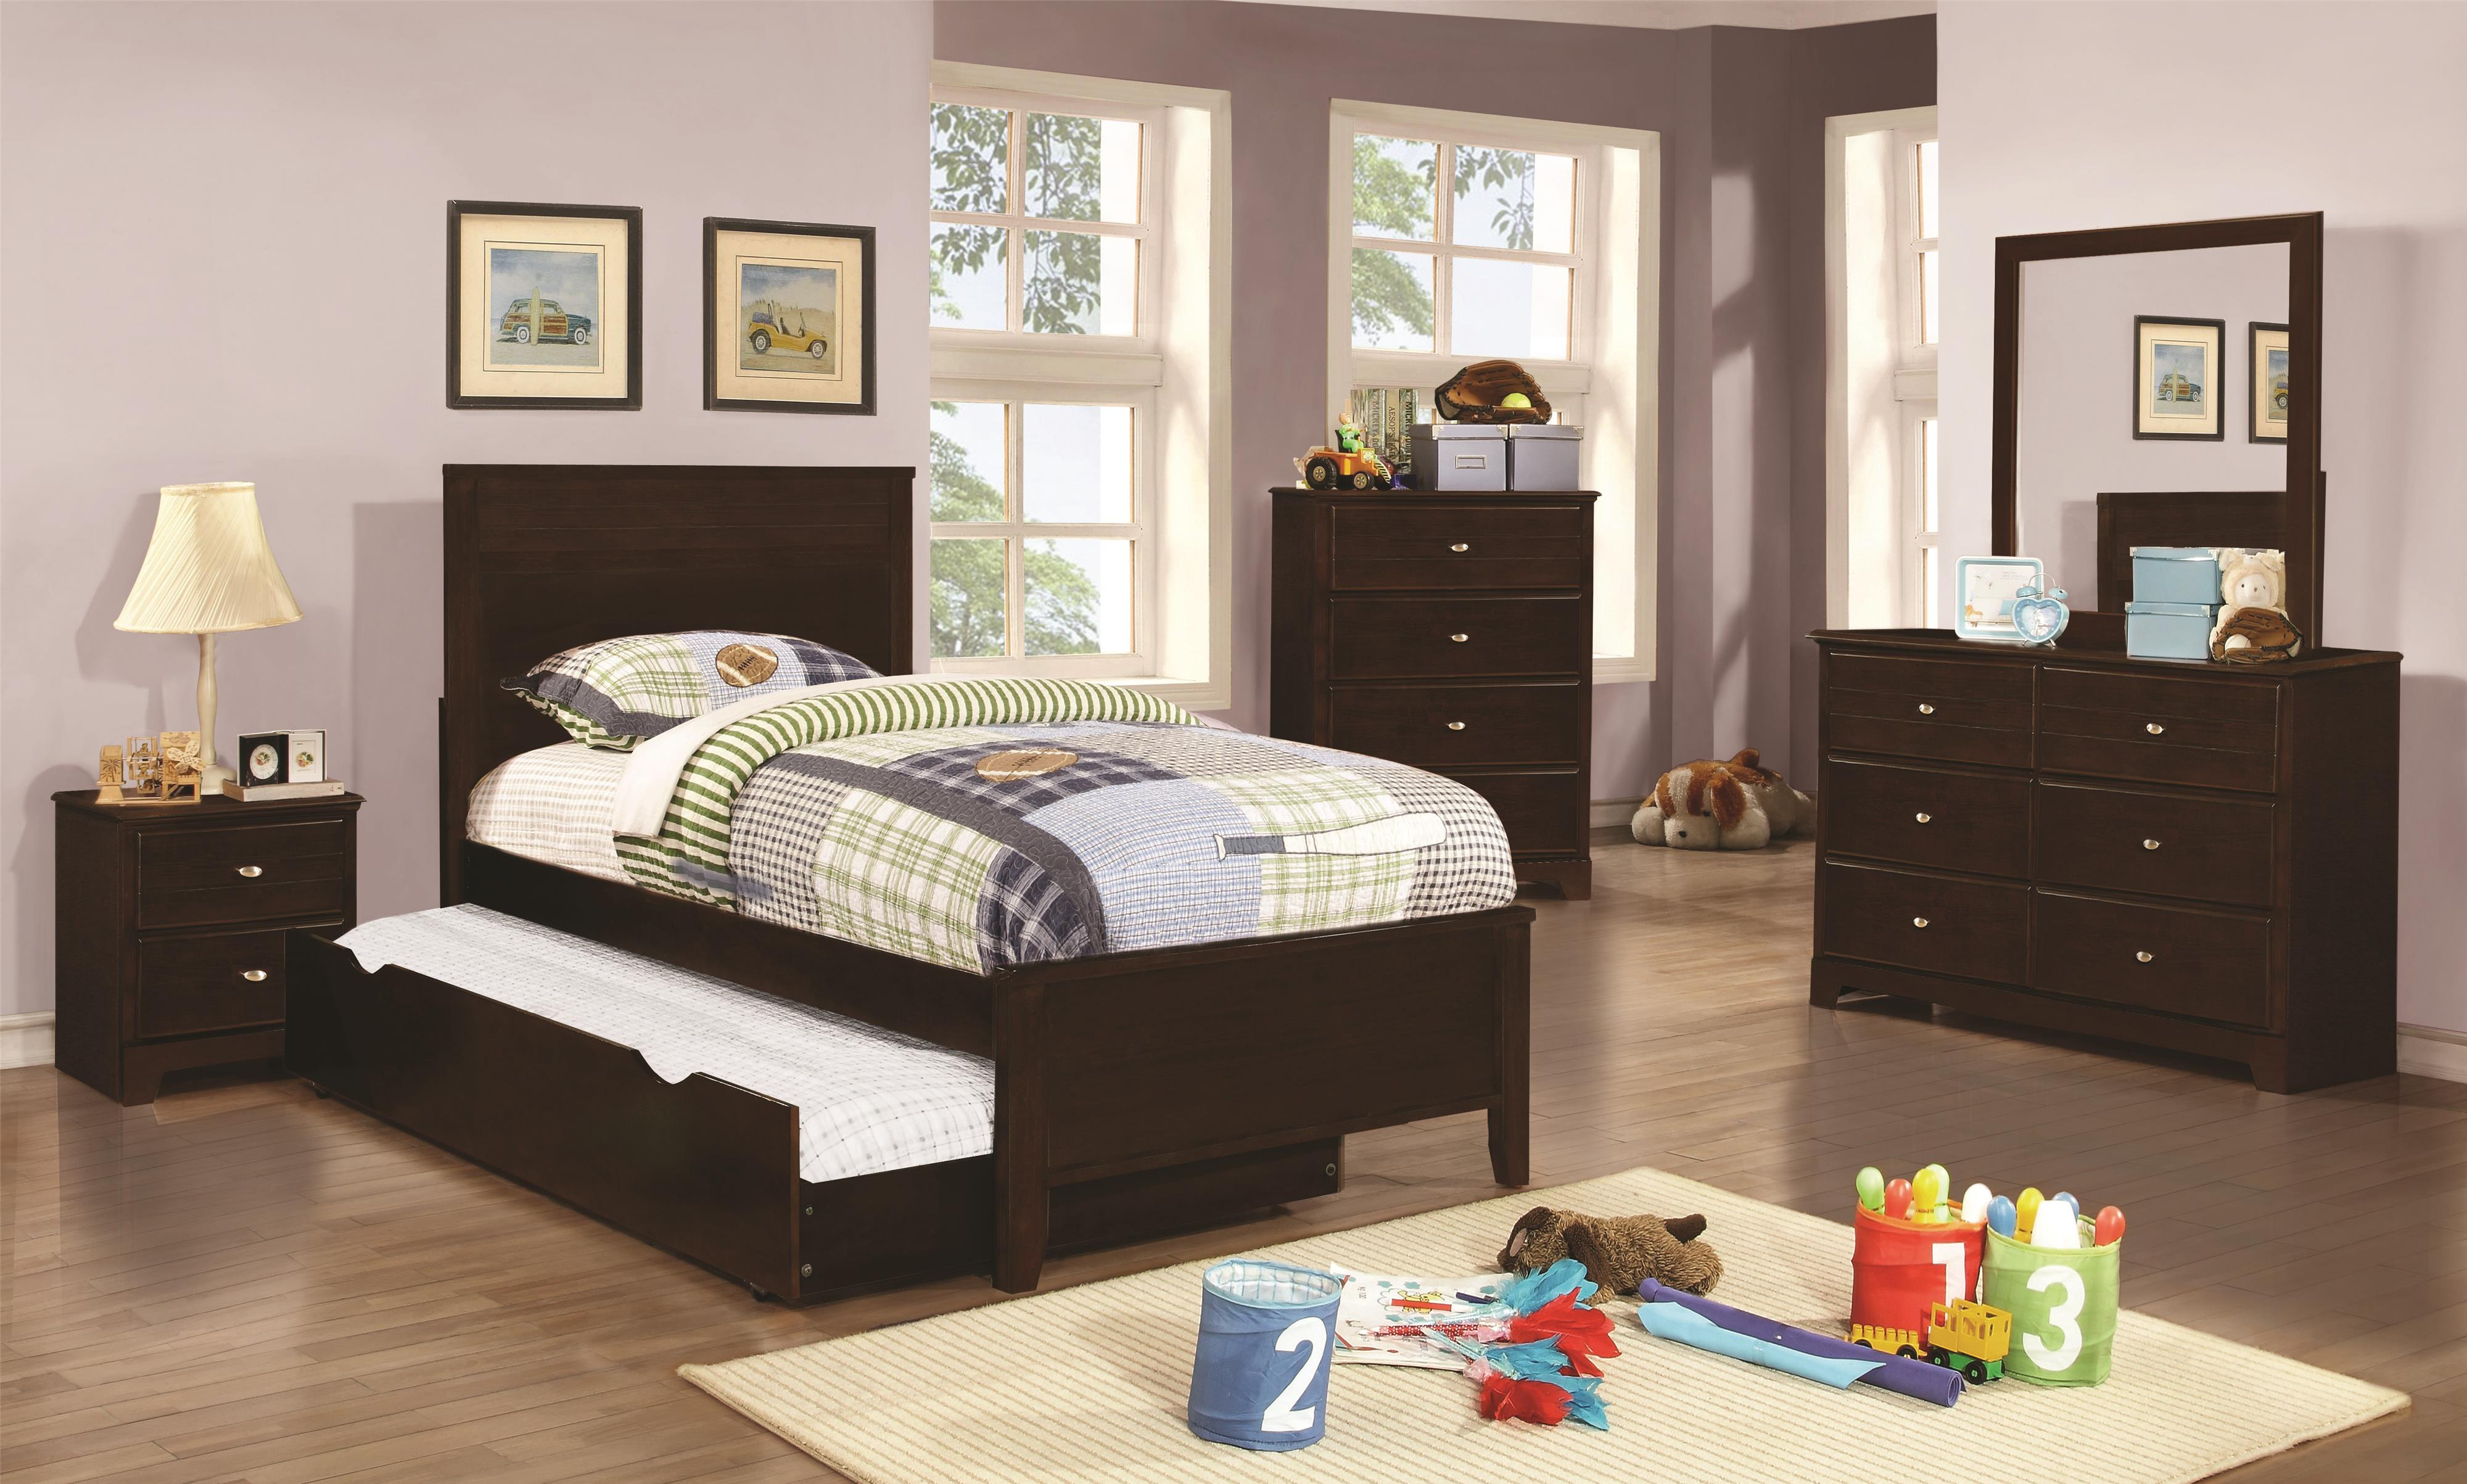 Coaster Ashton Collection Twin Bedroom Group - Item Number: 40077 T Bedroom Group 2